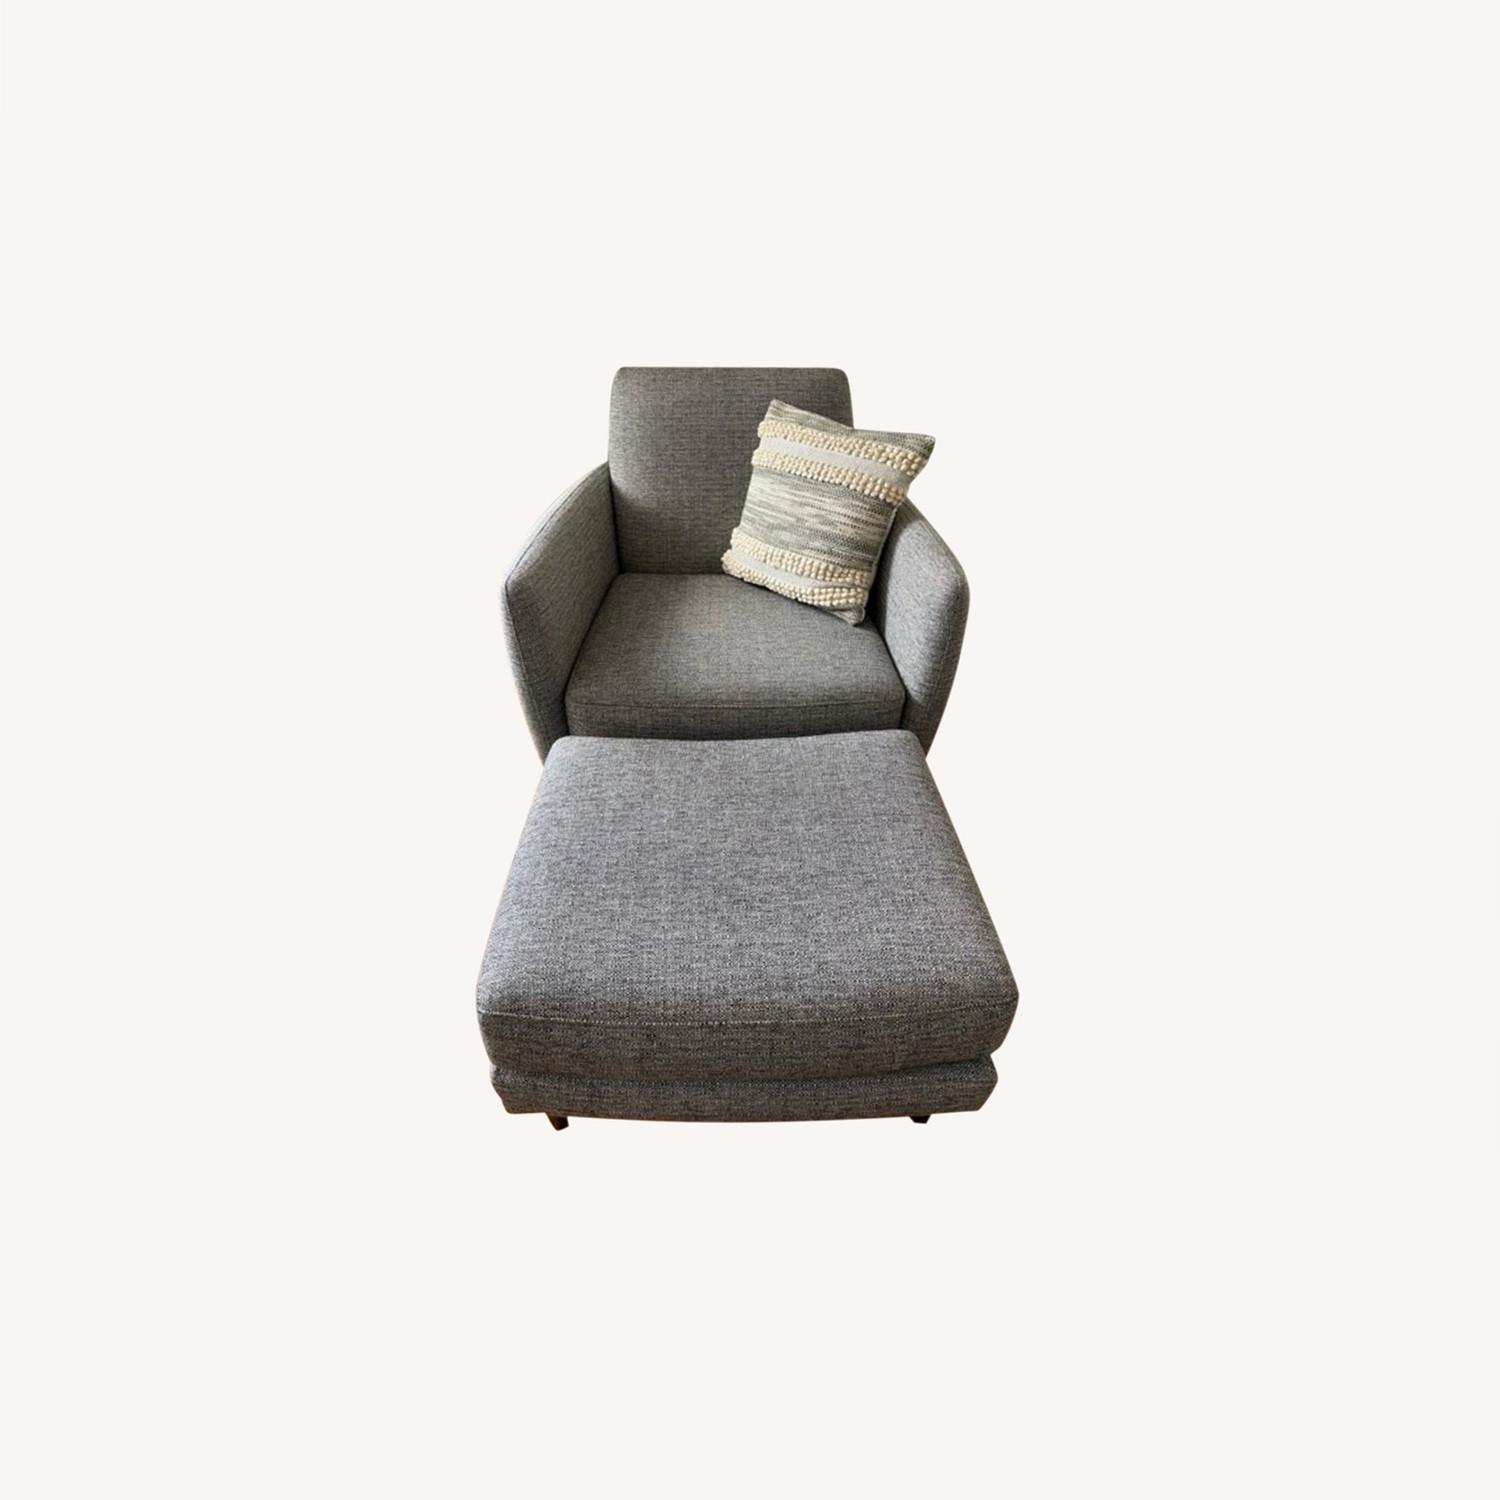 CB2 Grey Upholstered Parlour Chair and Ottoman - image-0